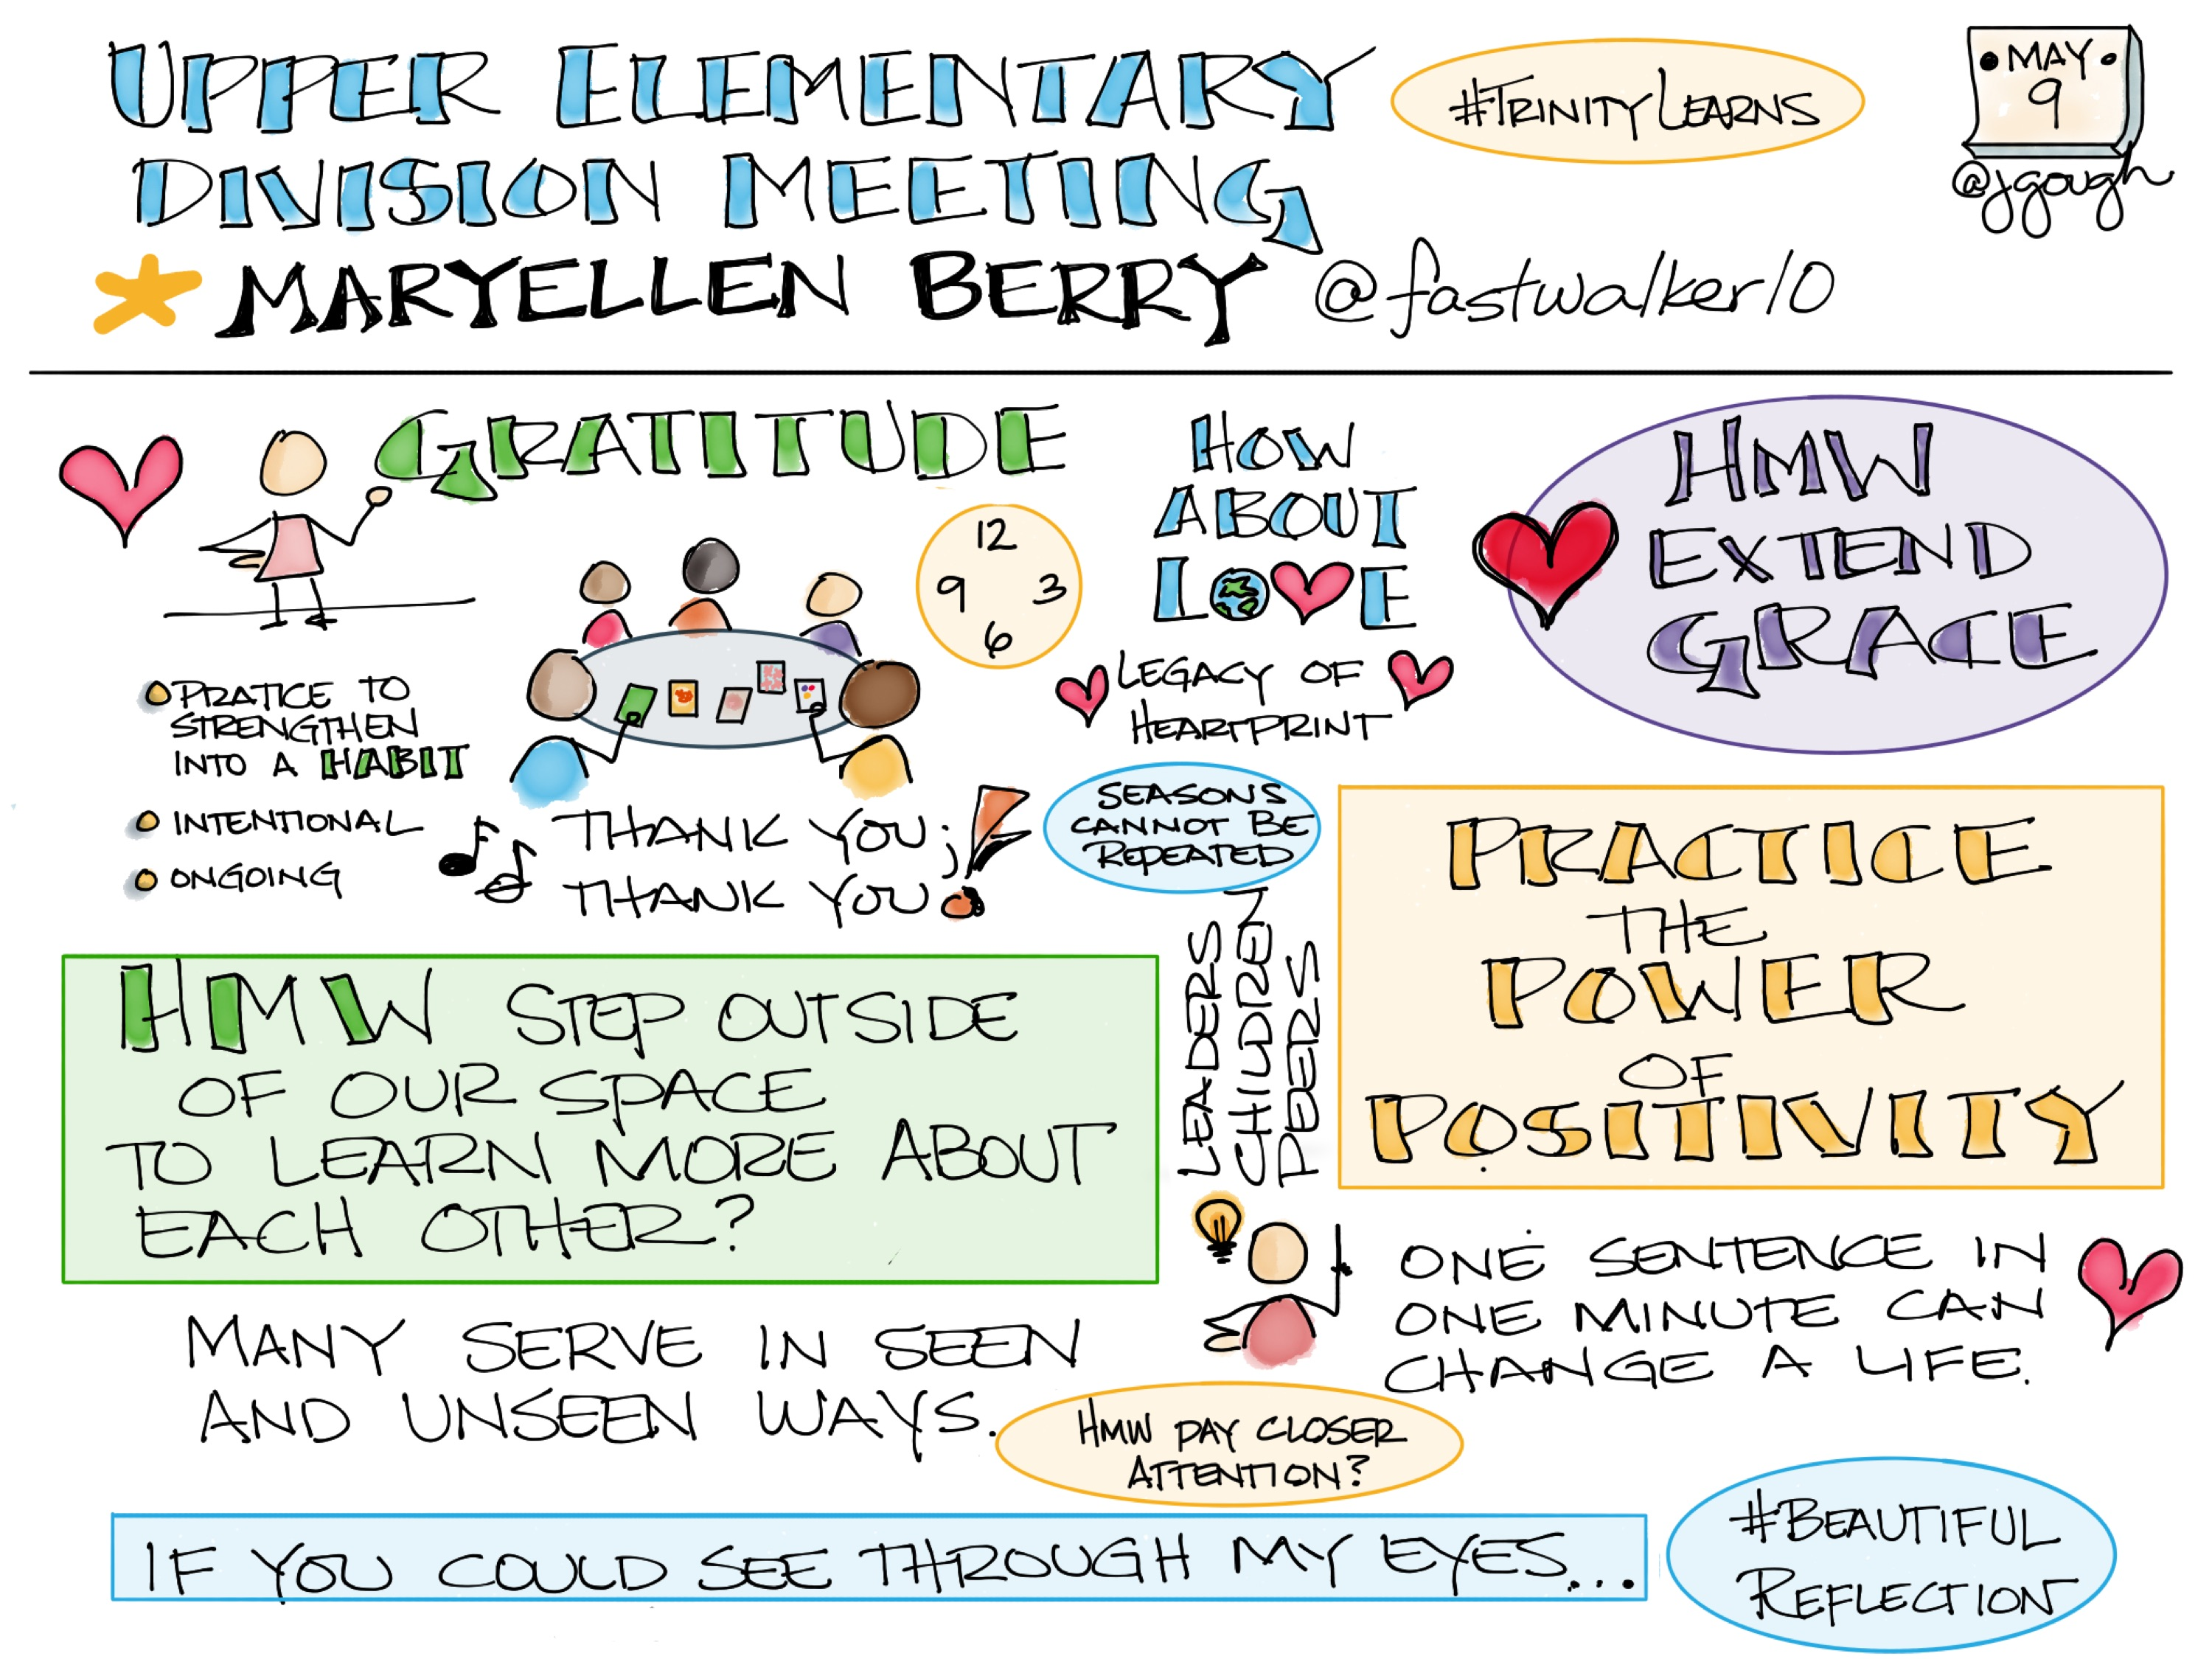 #TrinityLearns #Sketchnotes from @fastwalker10 2018 closing session. What have we learned from our UED leader? What commitments will we make?